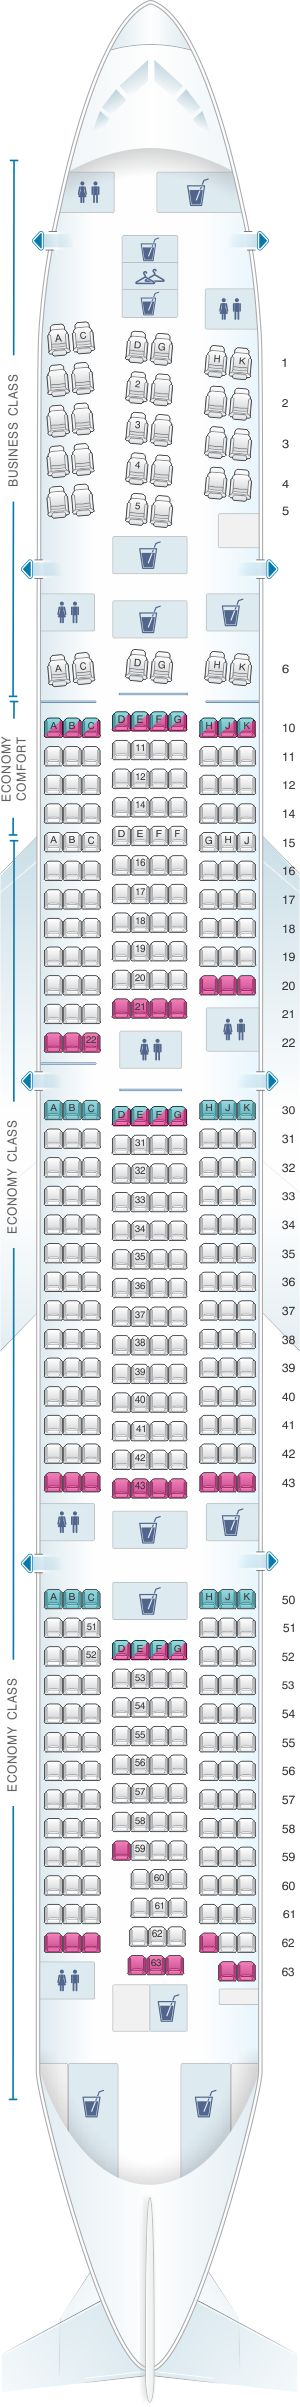 Seat Map KLM Boeing B777 300ER New World Business Class